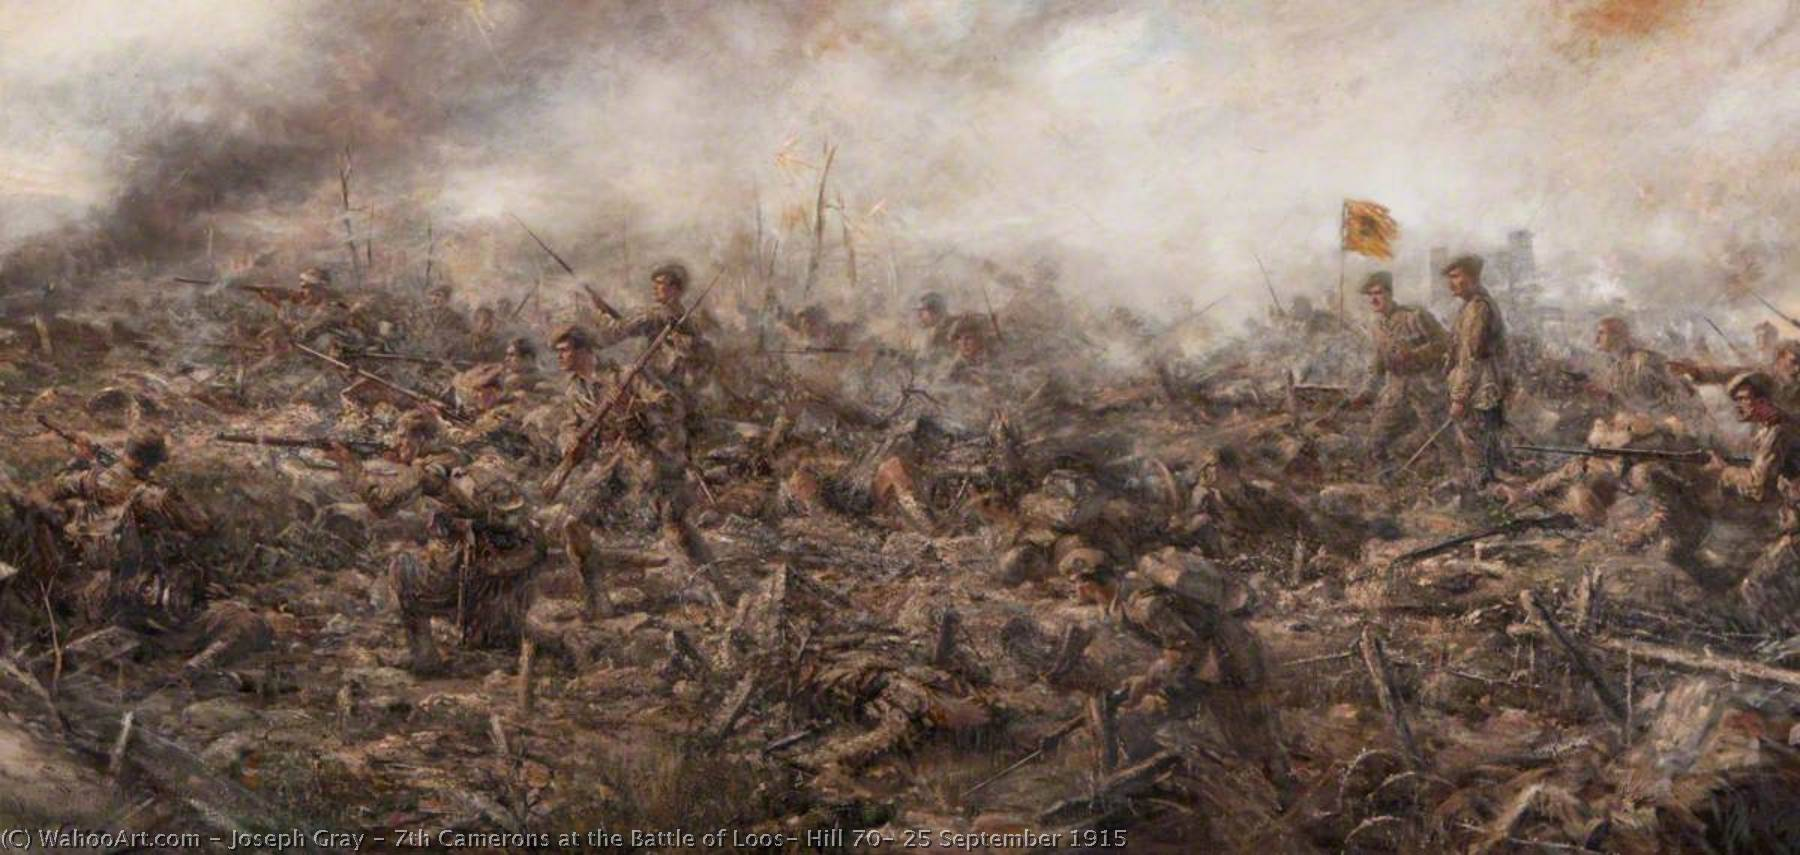 Order Paintings Reproductions | 7th Camerons at the Battle of Loos, Hill 70, 25 September 1915, 1921 by Joseph Gray | WahooArt.com